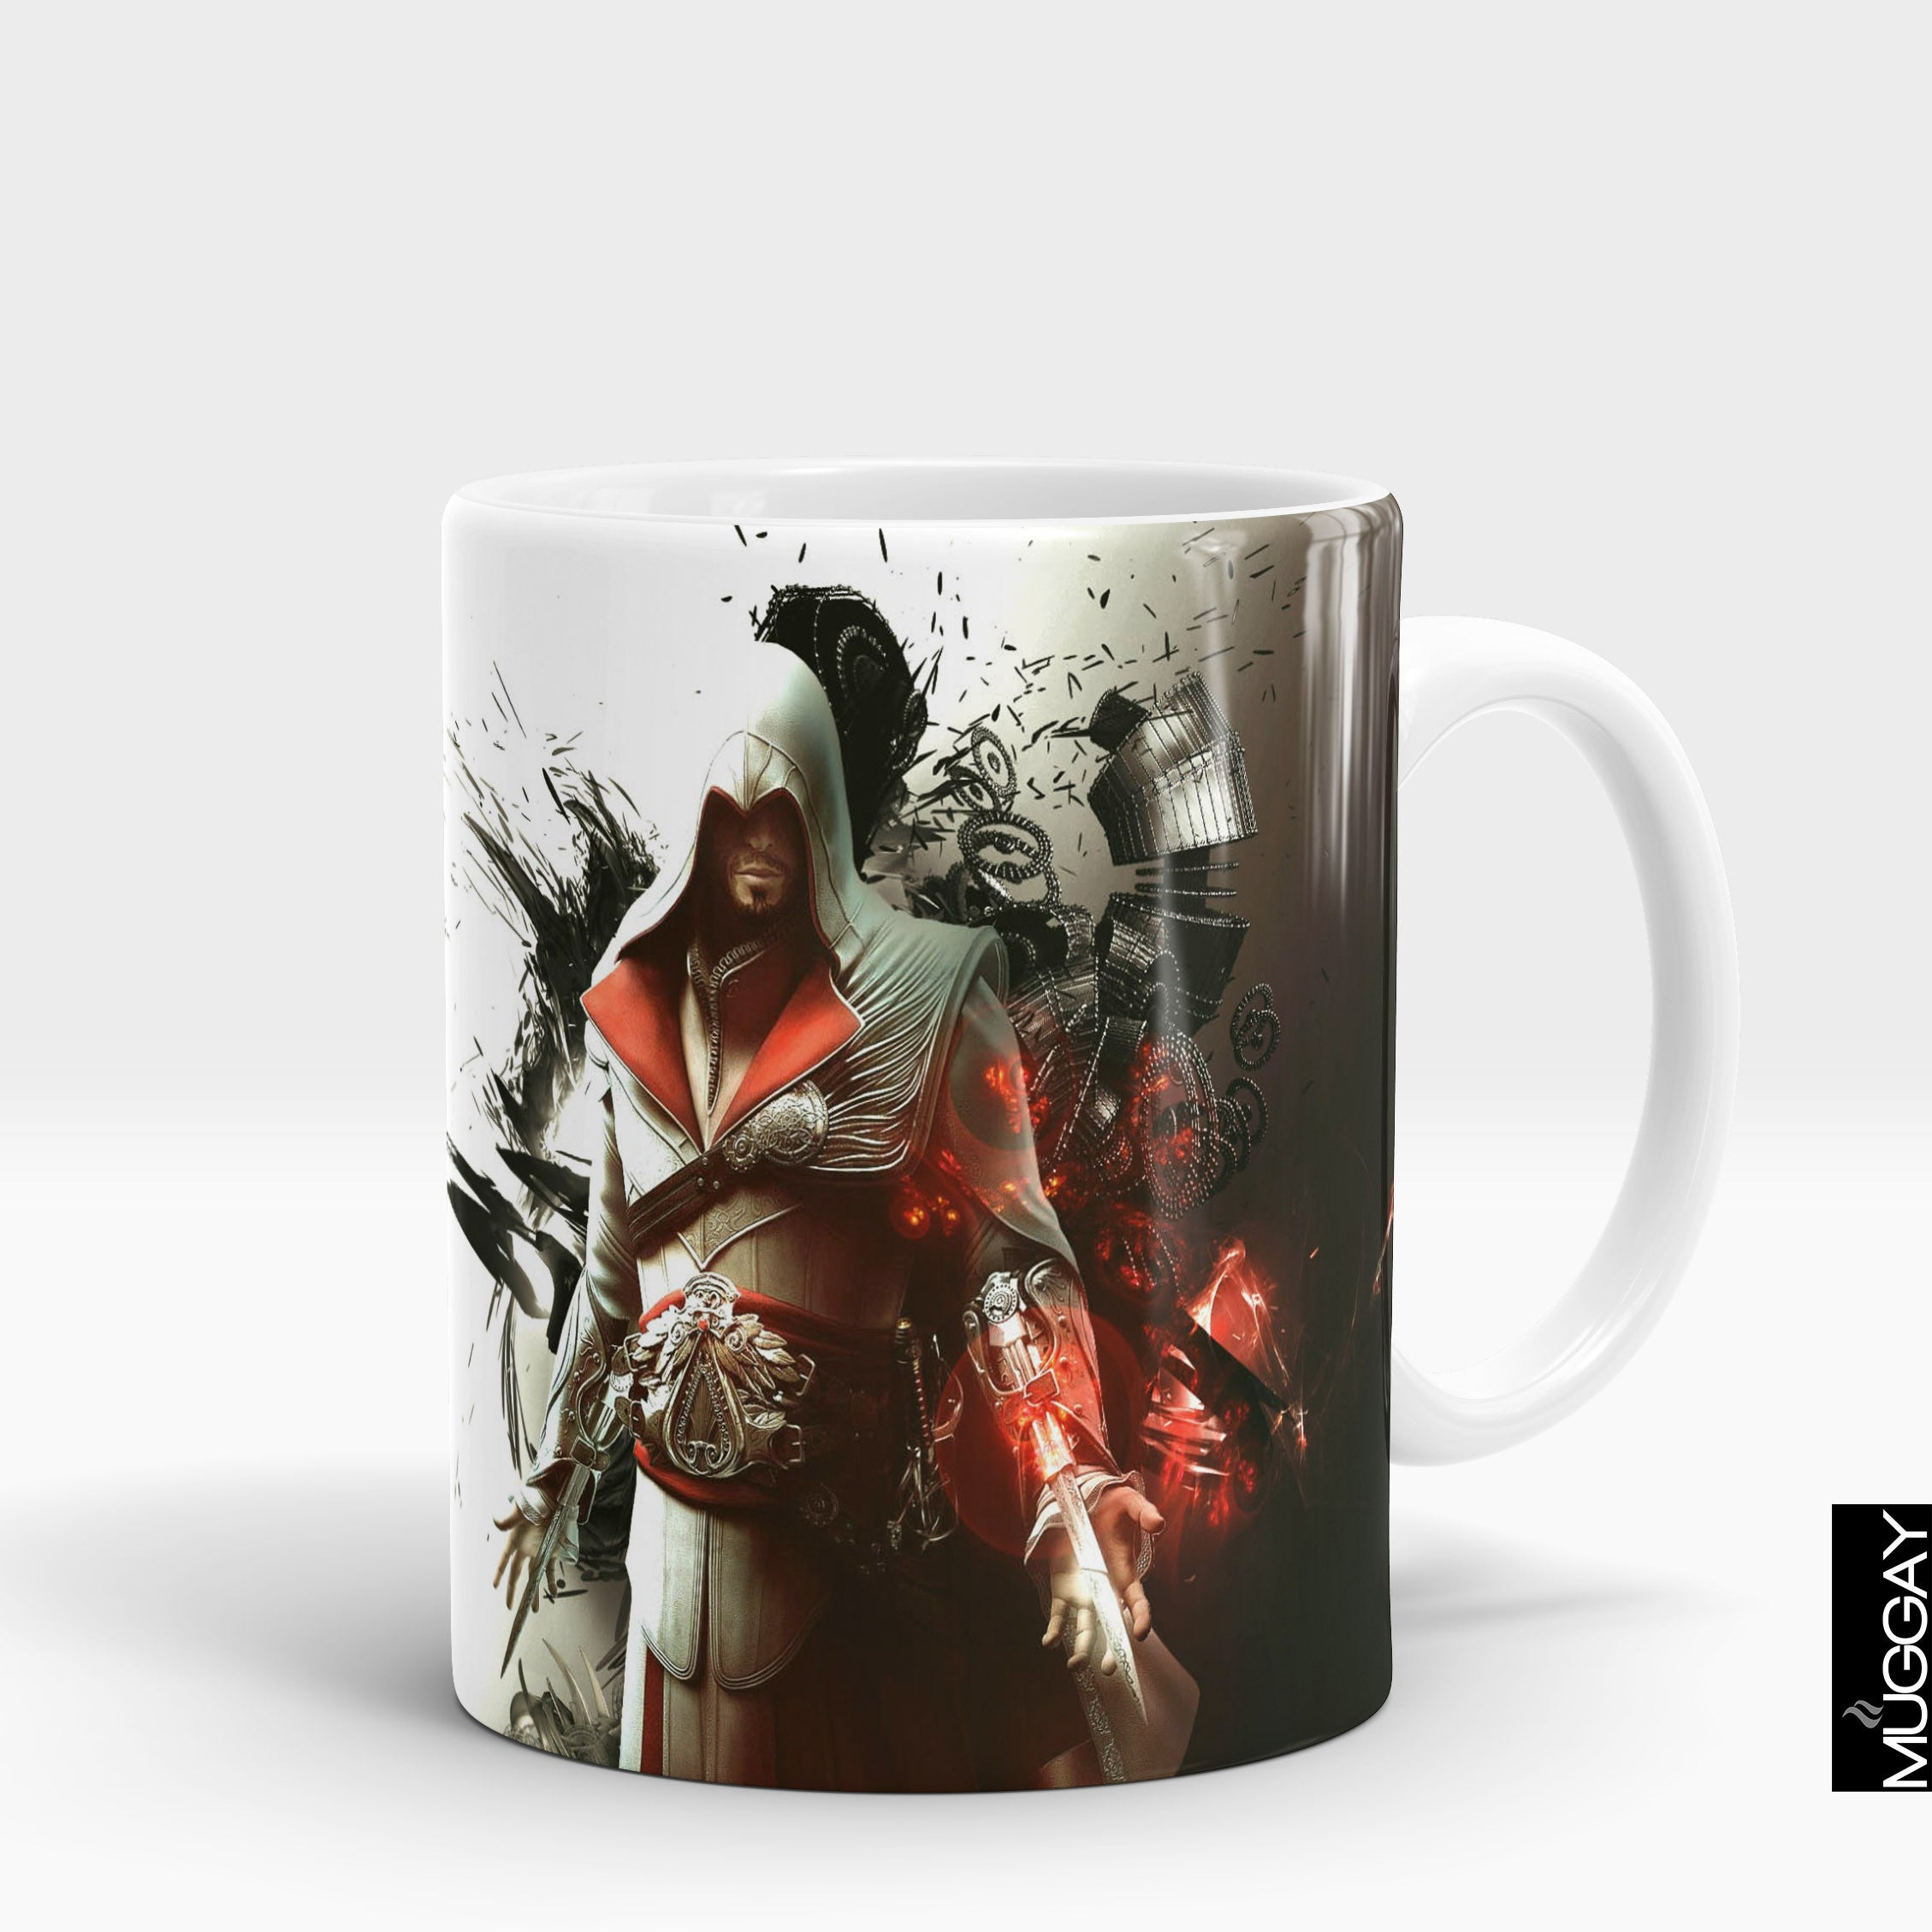 Assasins creed mugs - ac5 - Muggay.com - Mugs - Printing shop - truck Art mugs - Mug printing - Customized printing - Digital printing - Muggay